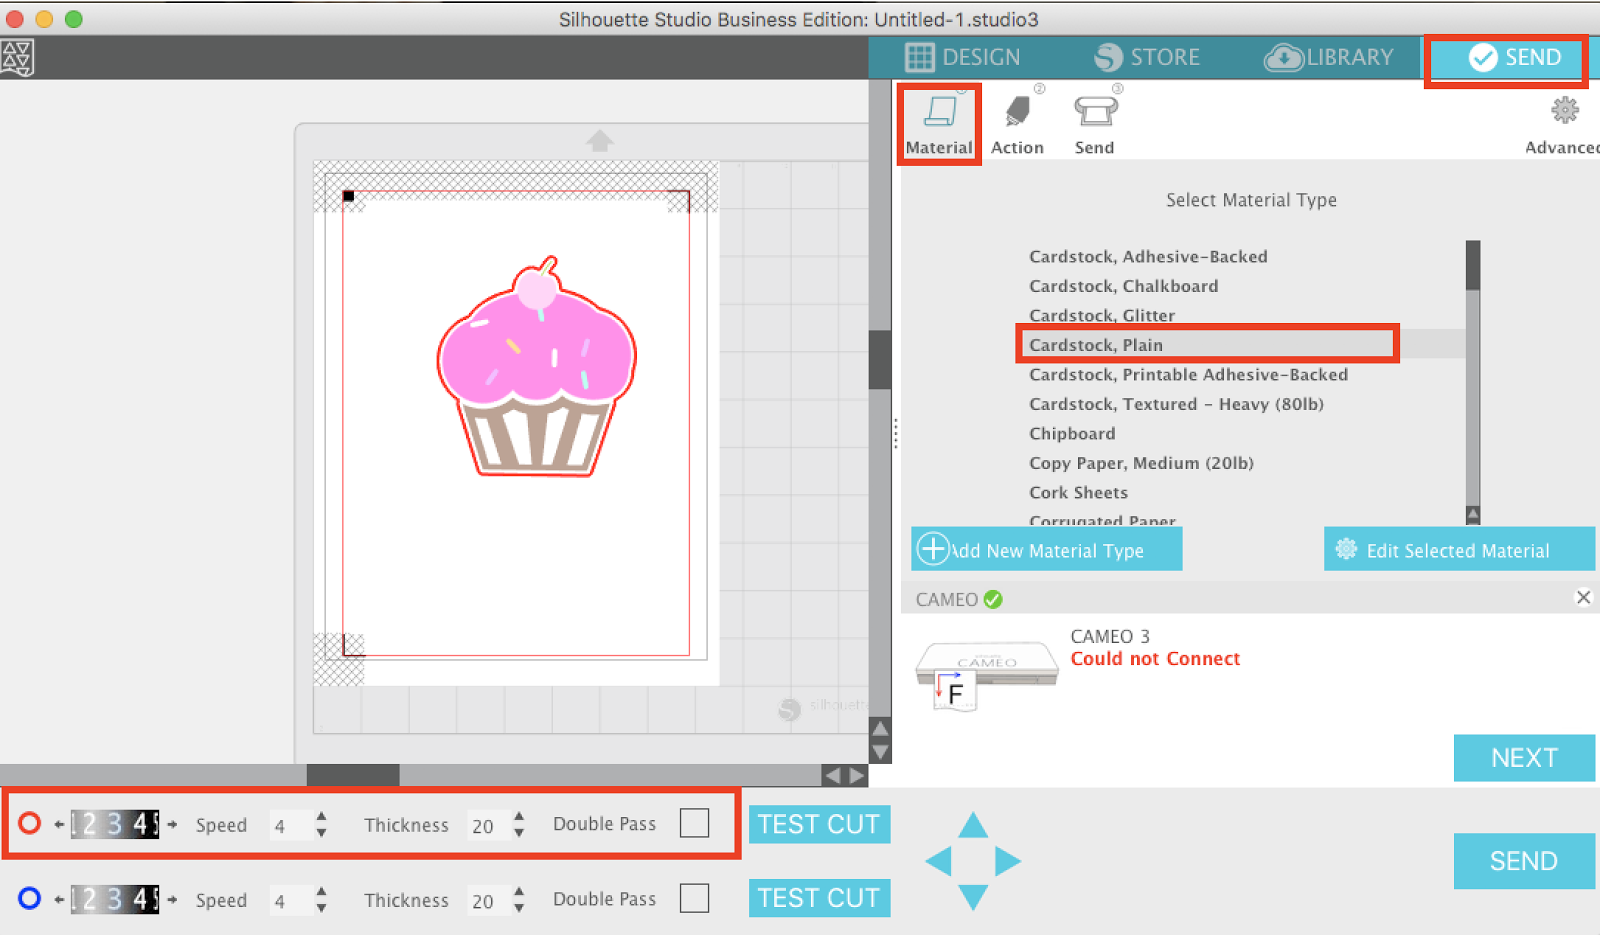 Beginner silhouette print and cut tutorial for v4 free silhouette silhouette studio v4 silhouette print and cut v4 silhouette cameo print and cut v4 fandeluxe Gallery